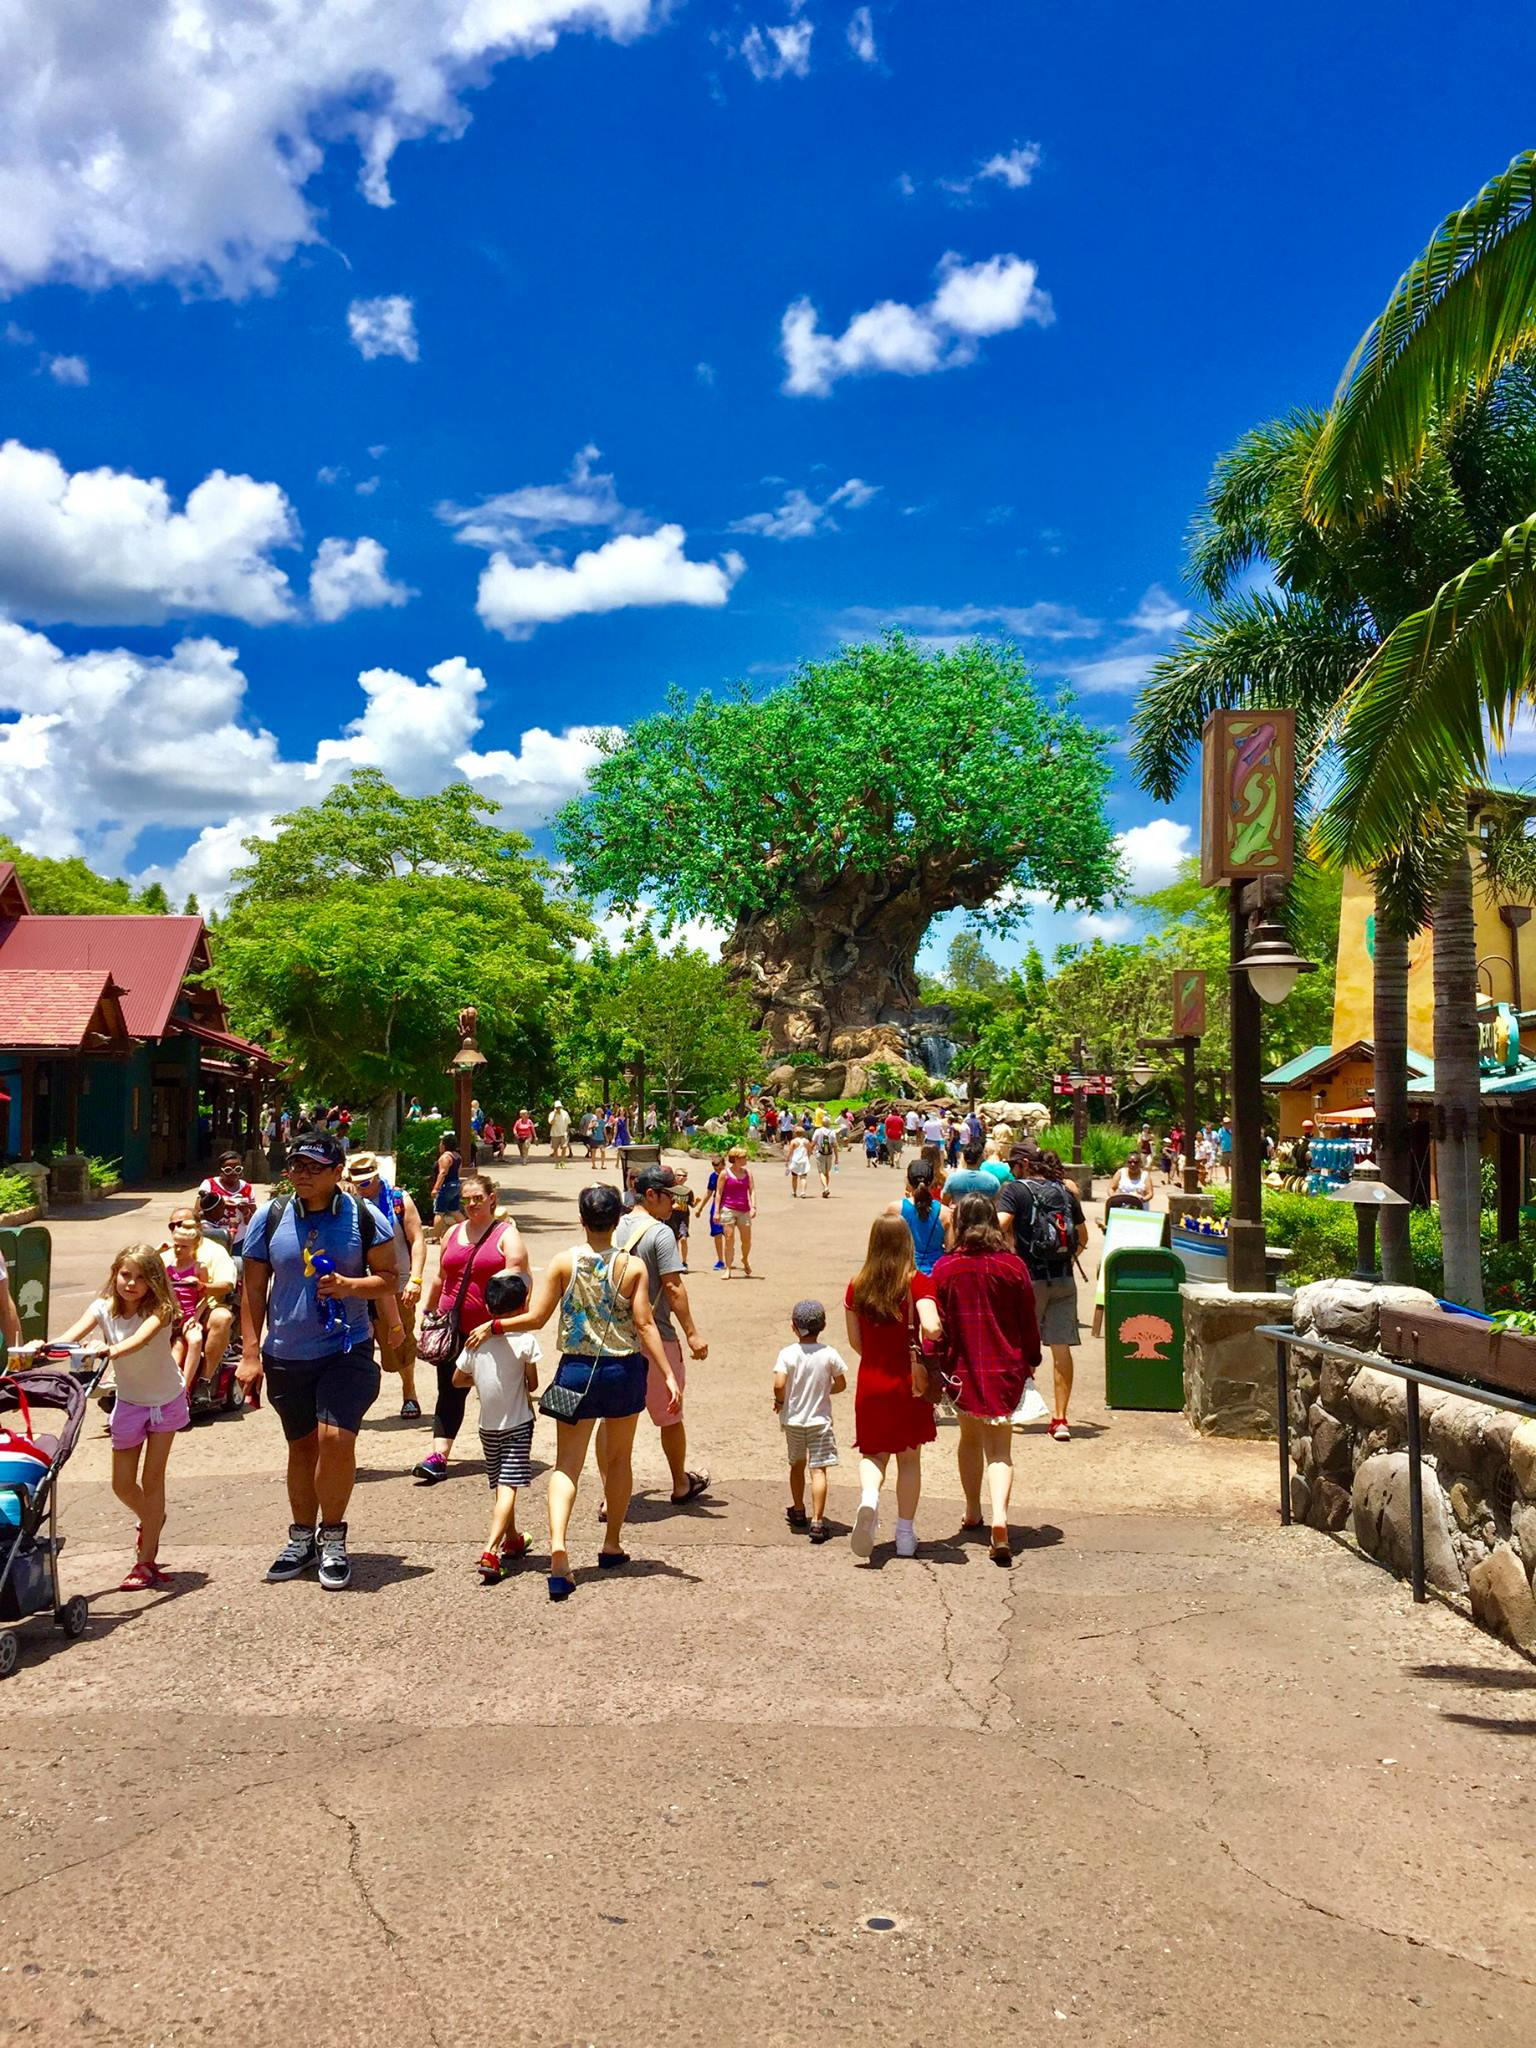 Disneys Animal Kingdom Theme Park | Tree of Life